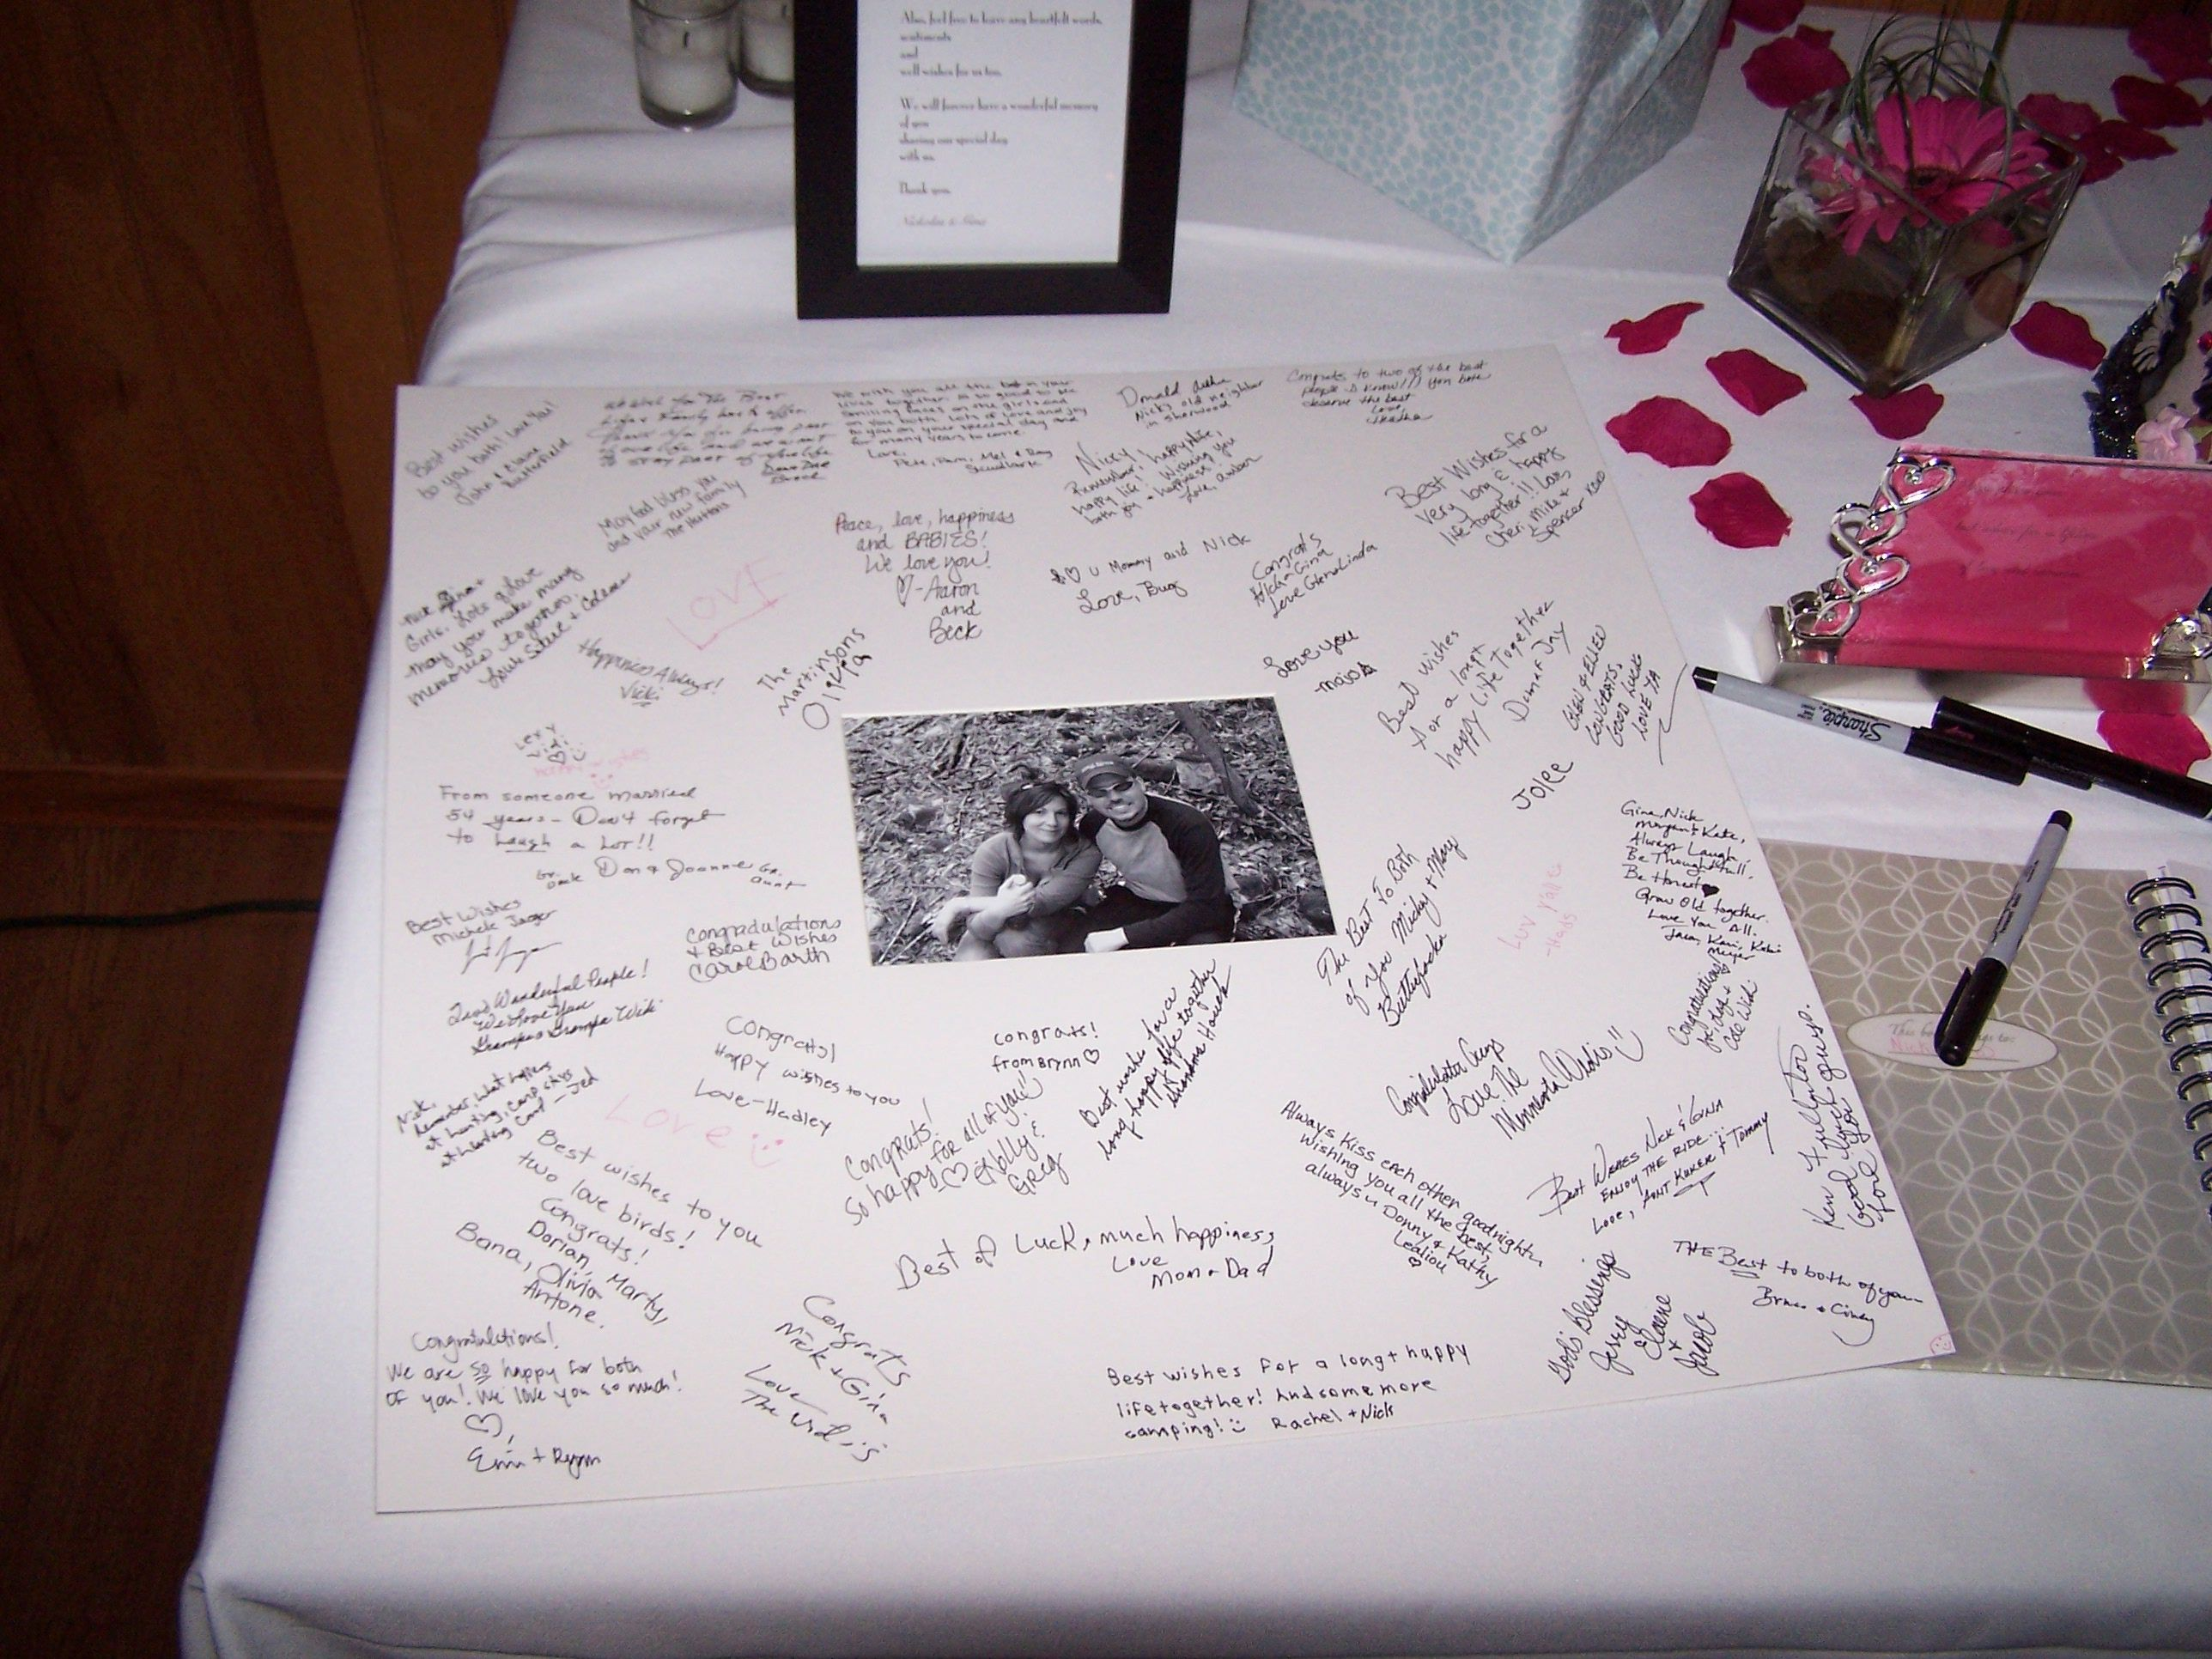 Nick Gina S Fun Wedding Reception At Wally Spot In Green Bay Guest Book Idea With A Signed Matted Picture Well Wishes